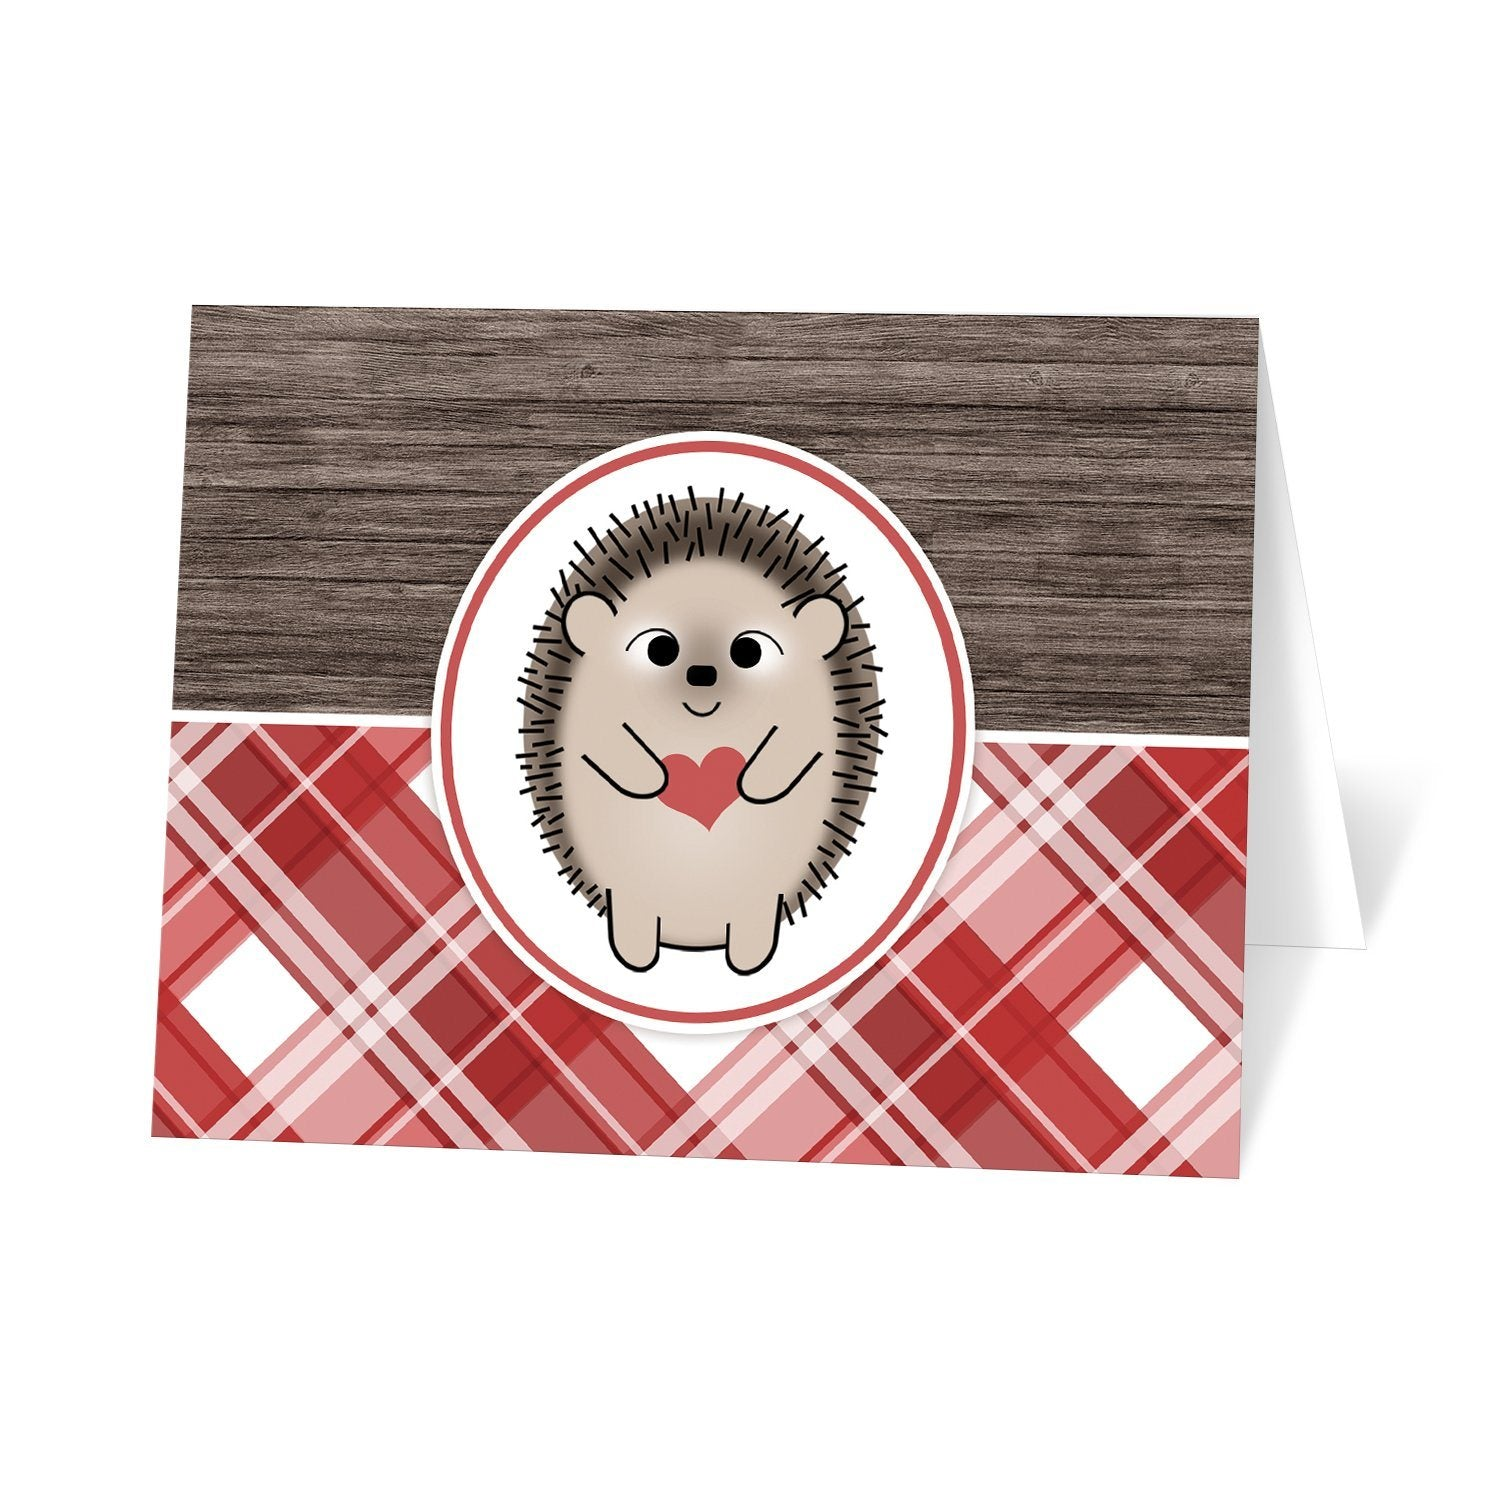 Rustic Hedgehog Heart Wood Red Plaid Note Cards at Artistically Invited